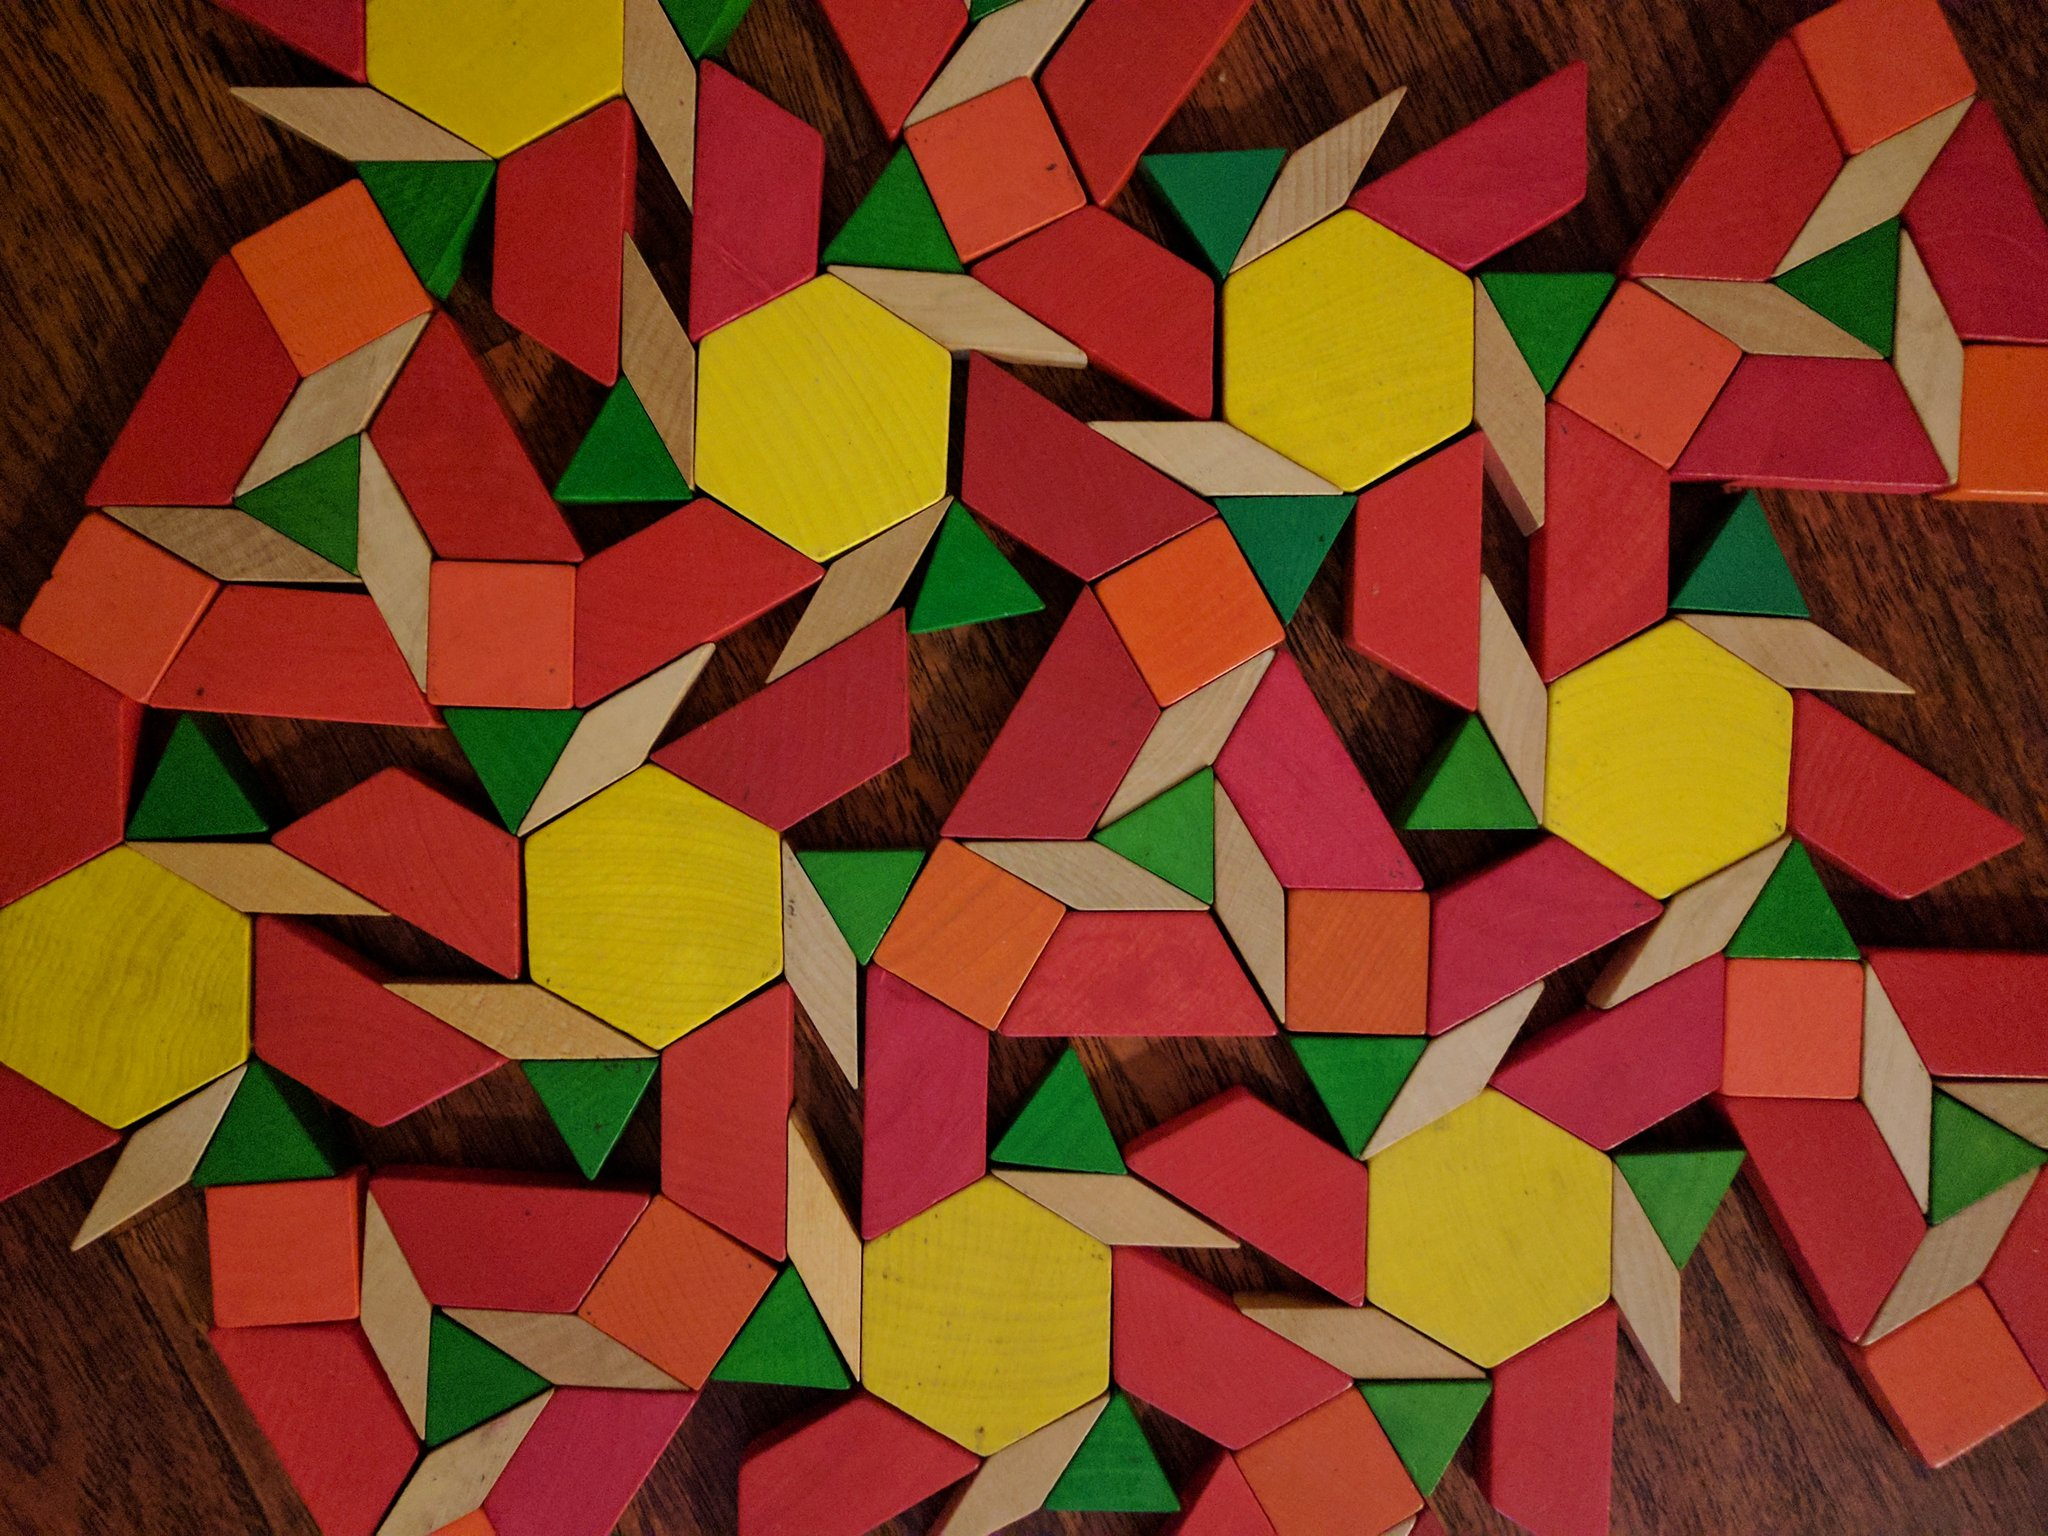 Not sure if my pattern block creation is exactly a perfect tessellation, but it's close... Happy #worldtessellationday https://t.co/Tj7QmGXbBy